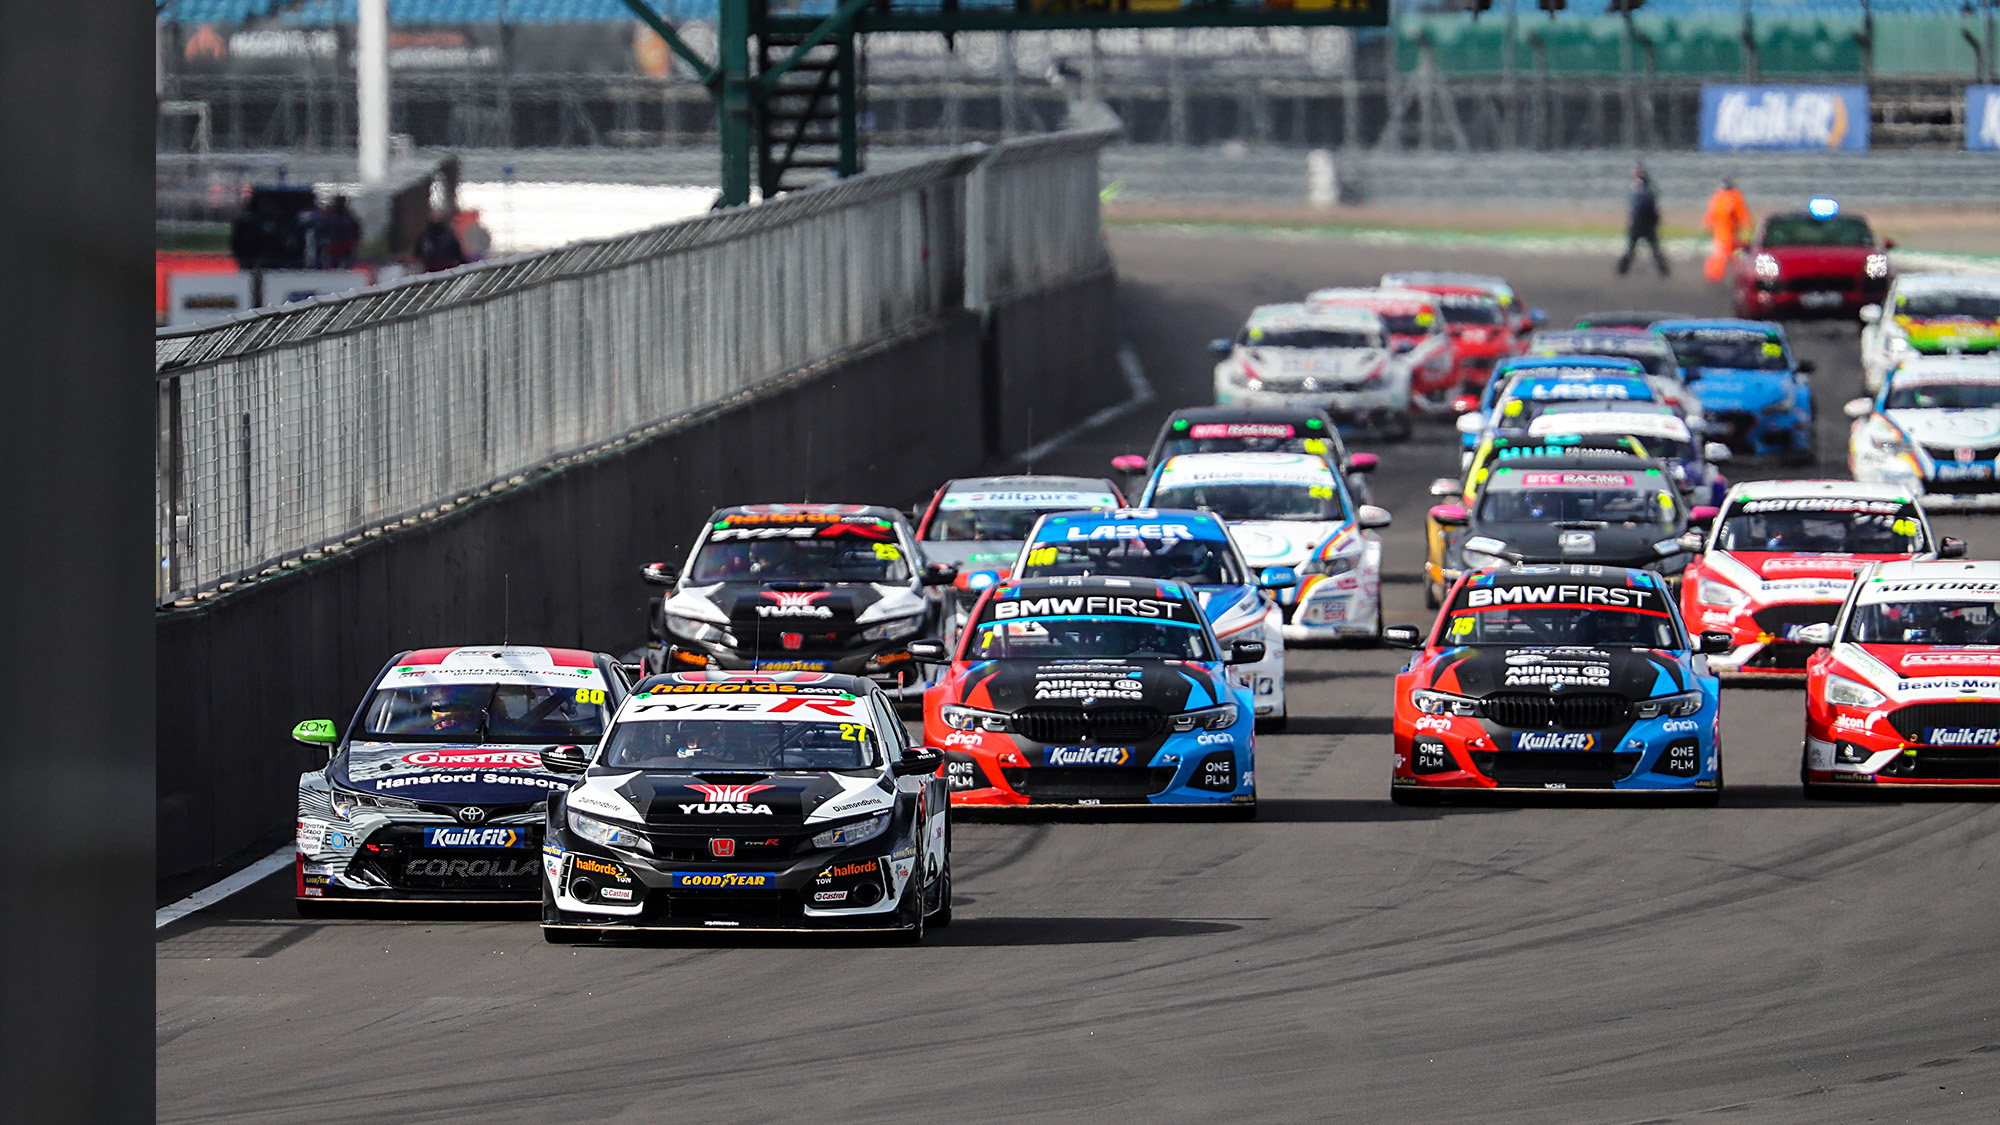 Start of Race 1 at Silverstone in the 2020 BTCC psd